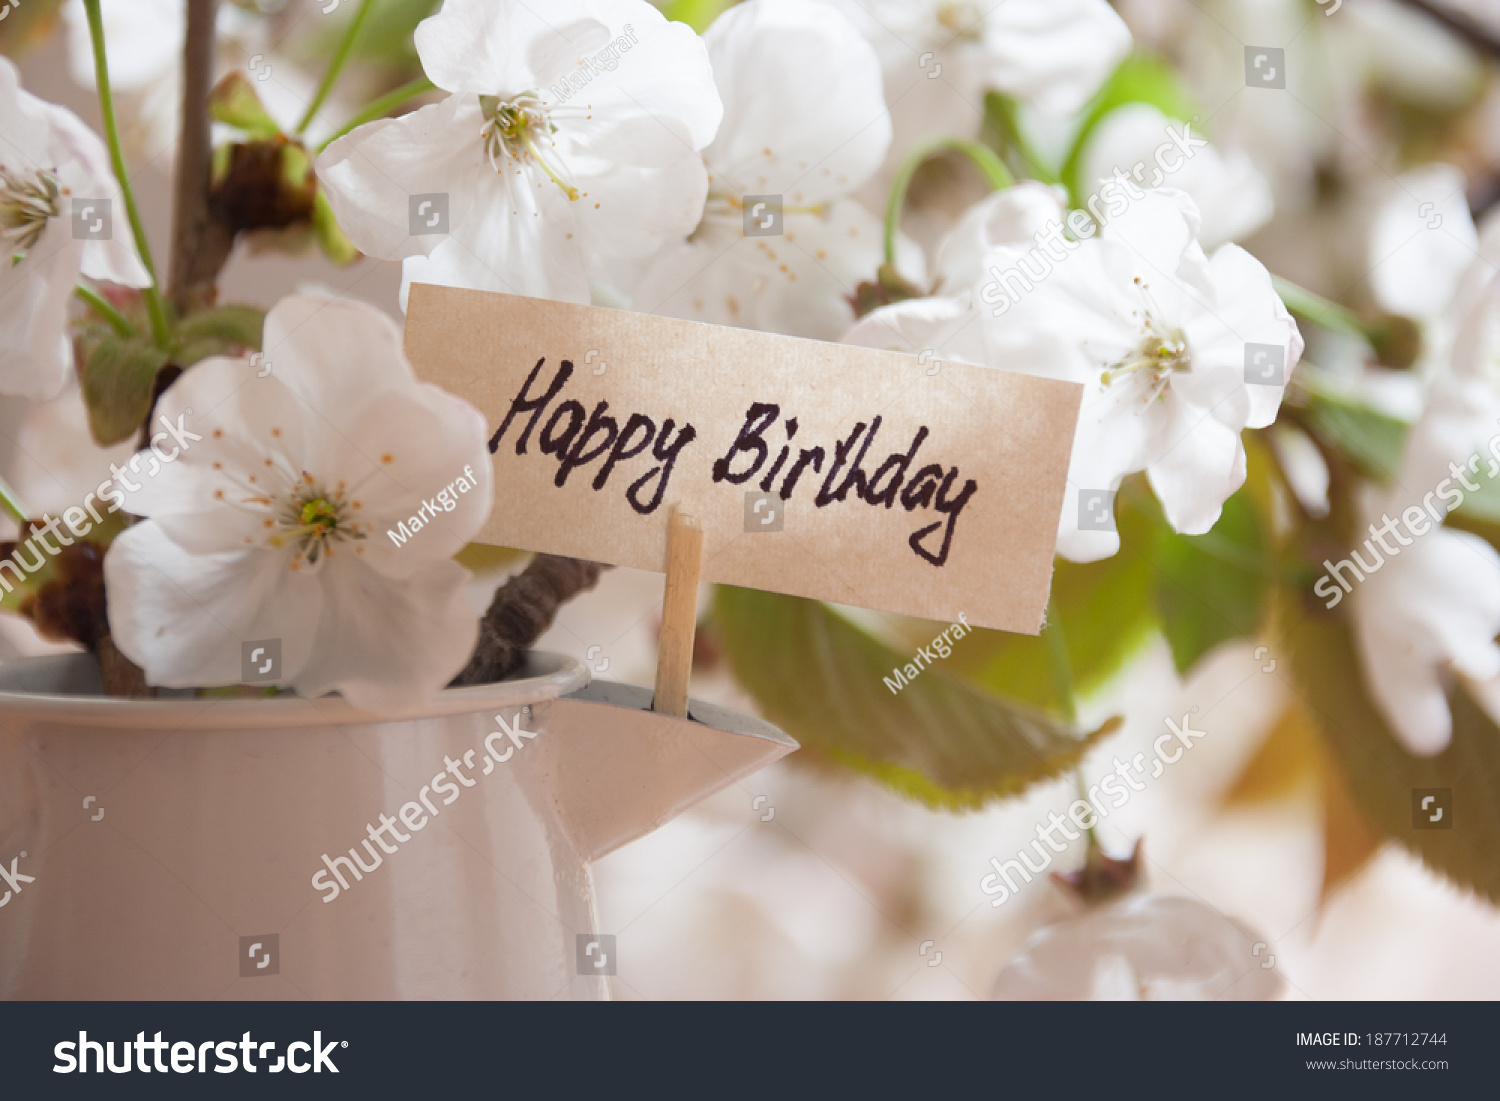 Happy birthday greeting card white flowers stock photo download now happy birthday greeting card white flowers on a background izmirmasajfo